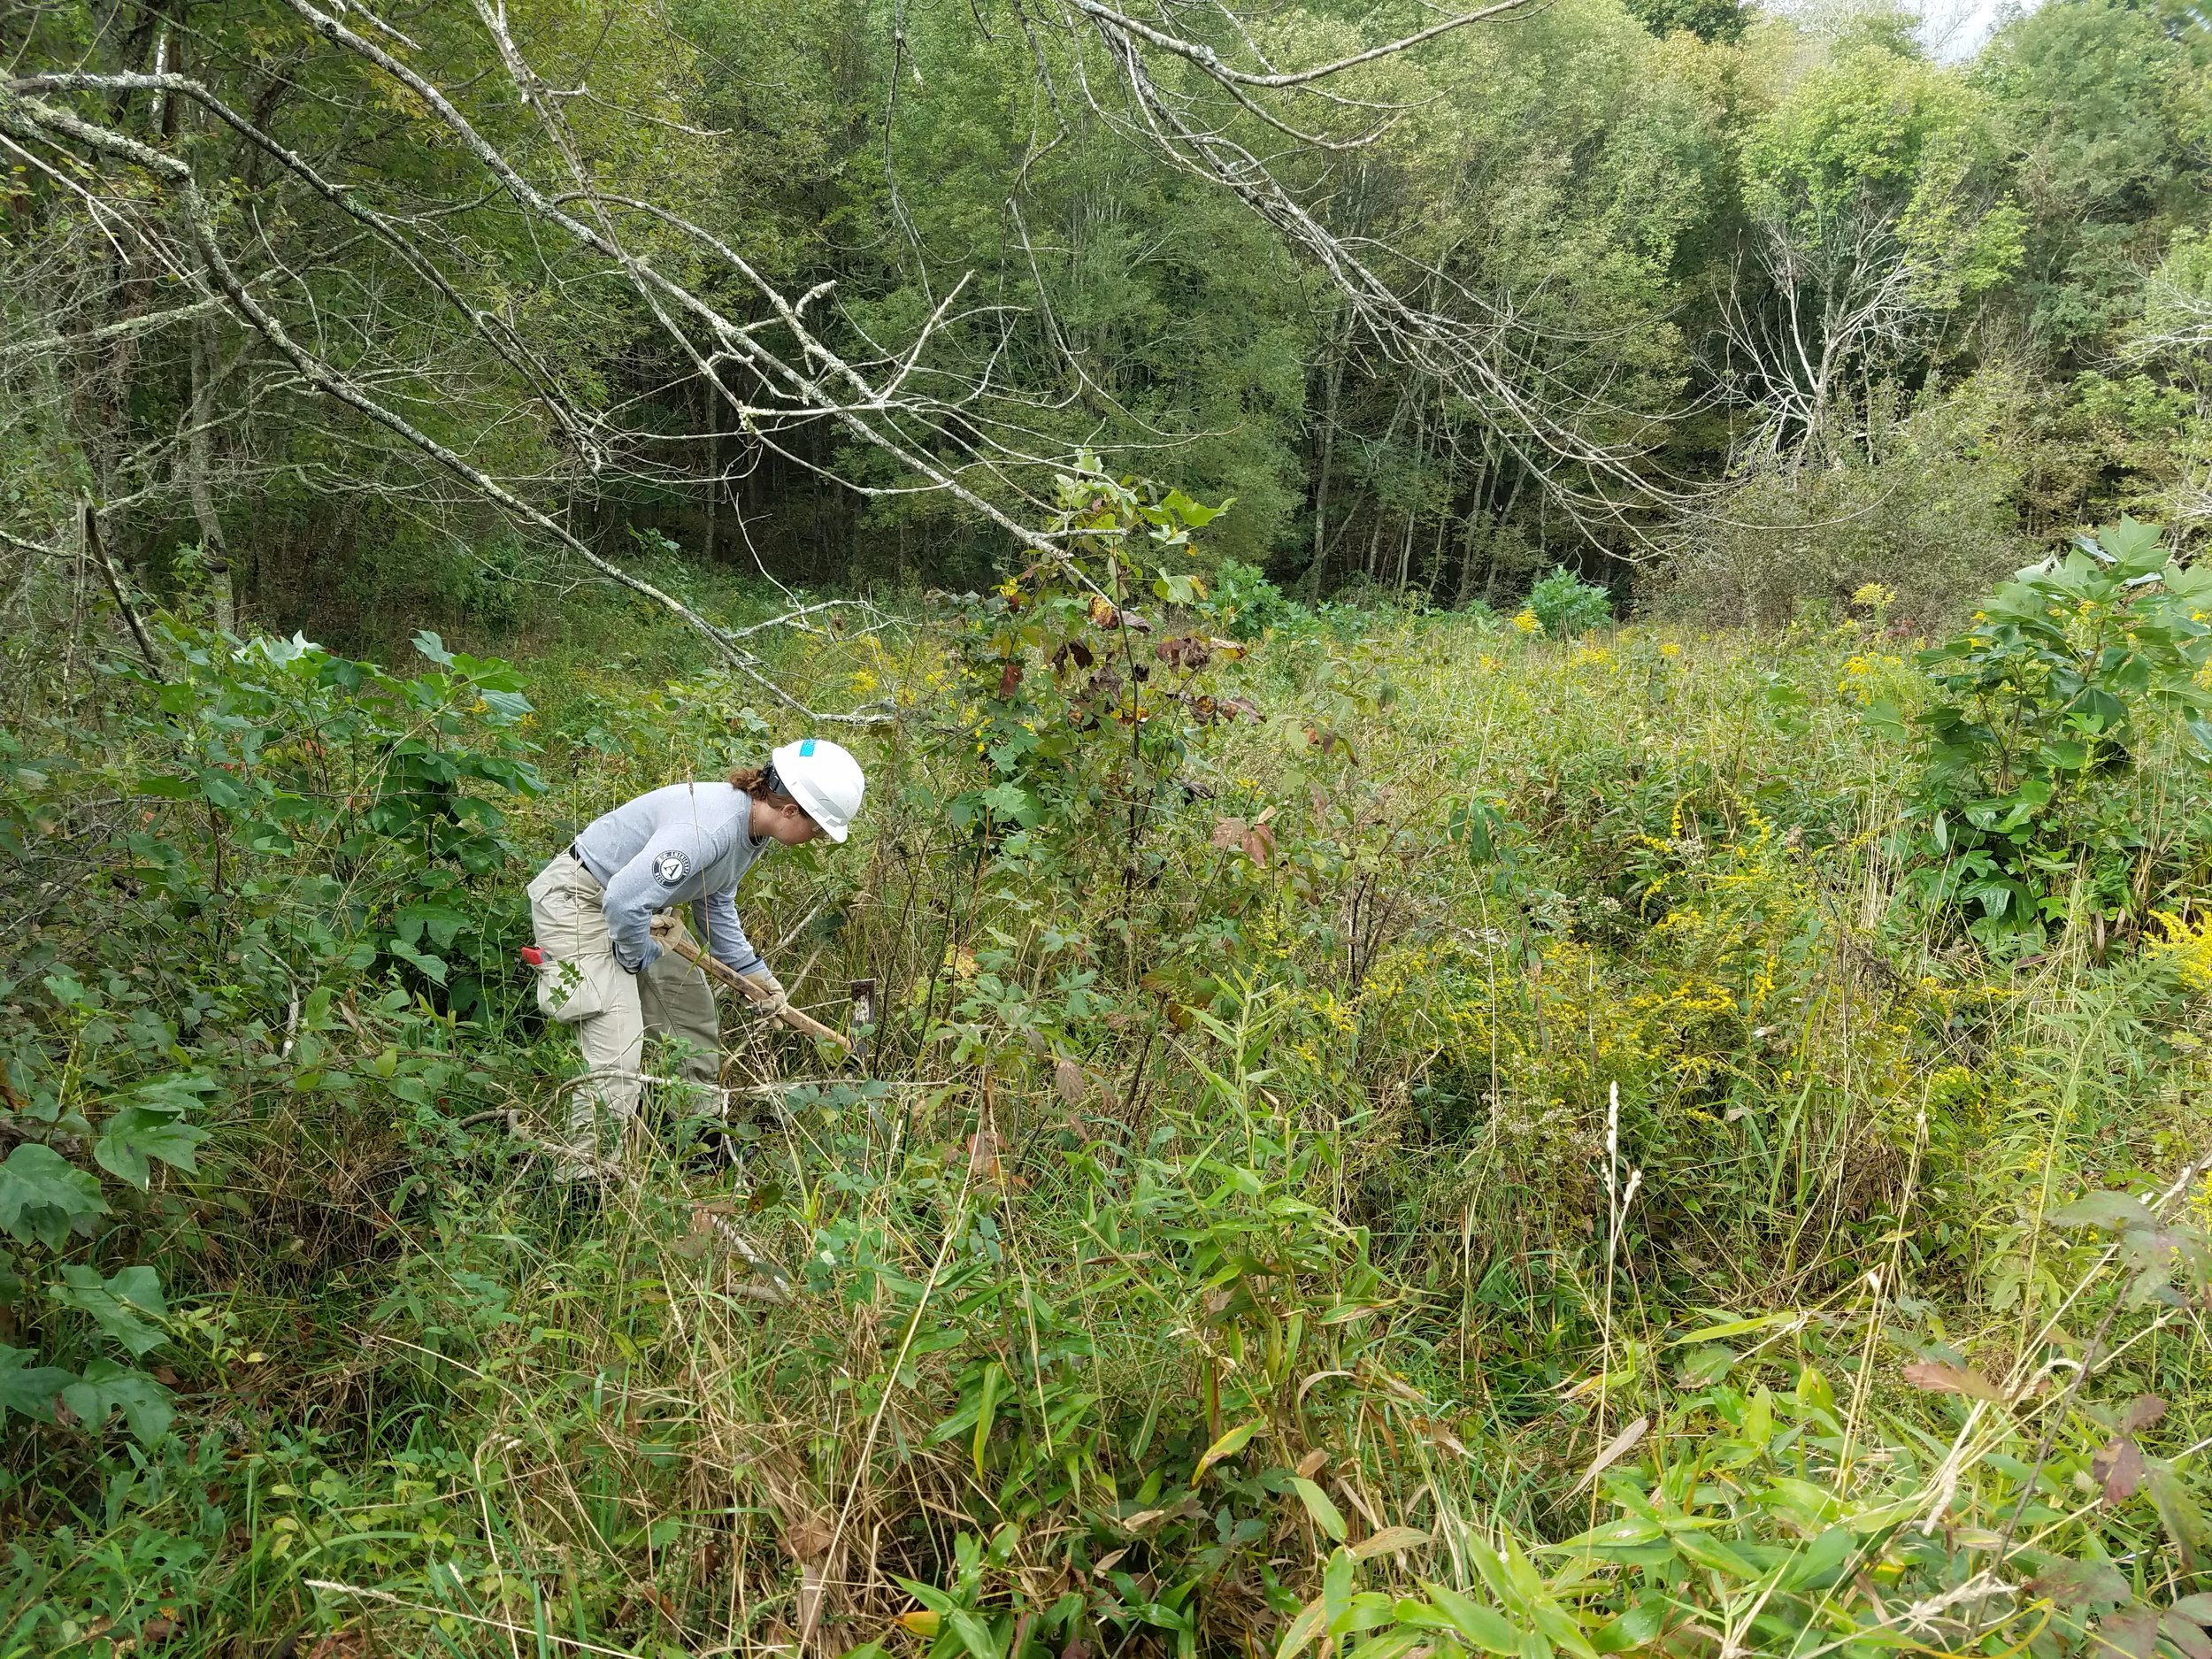 AmeriCorps NCCC member removing non-native multiflora rose from the habitat.